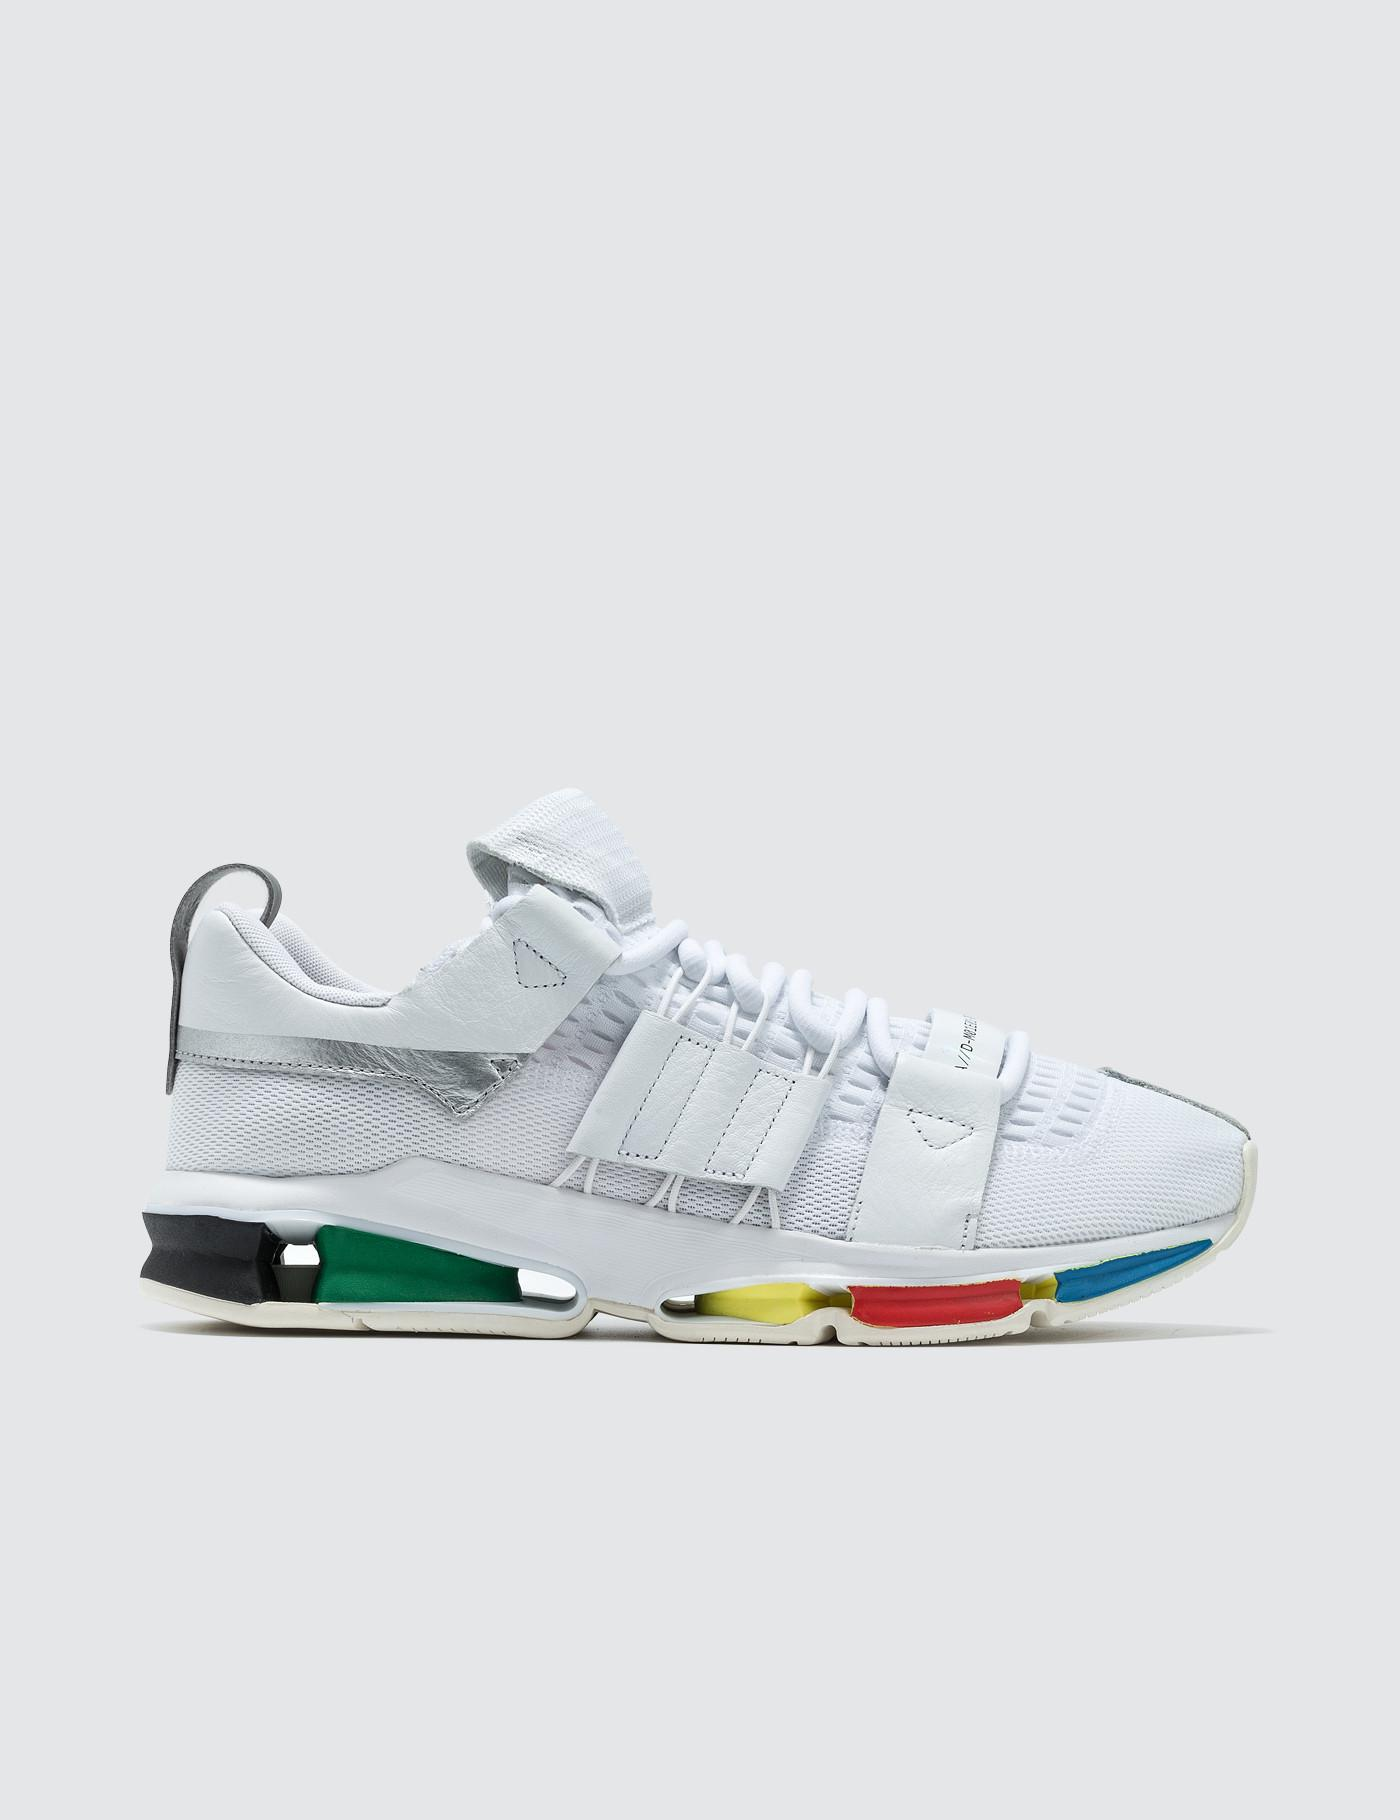 cheaper 32874 65b73 adidas Originals. Mens White Oyster X Adidas Twinstrike Adv